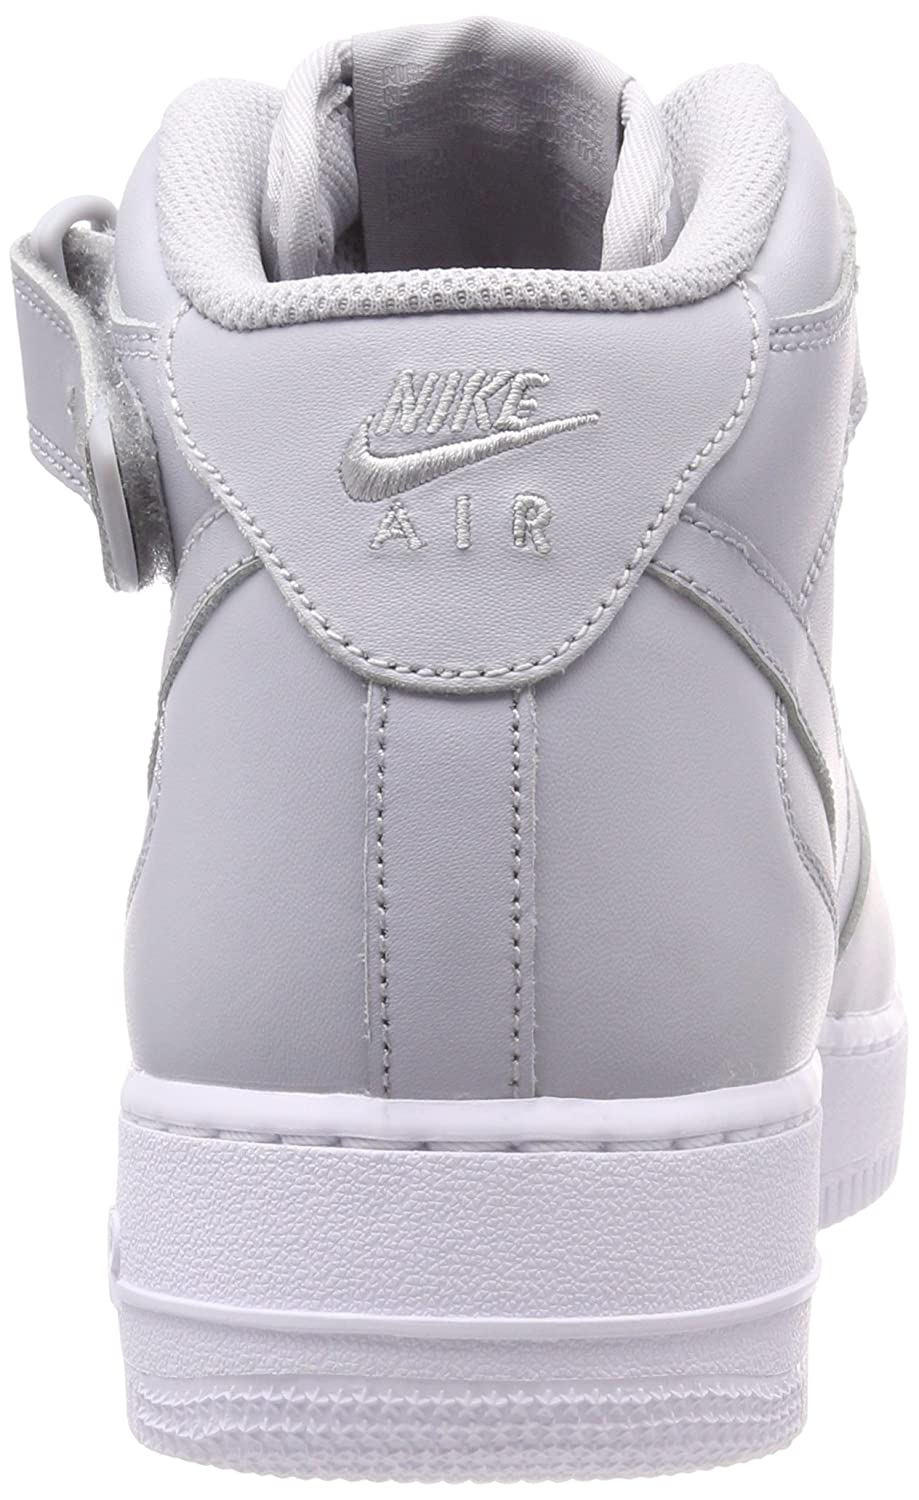 Nike Air Force 1 Mid 07, Zapatillas Altas para Hombre, Gris (Wolf Grey-White 046), 45.5 EU: Amazon.es: Zapatos y complementos